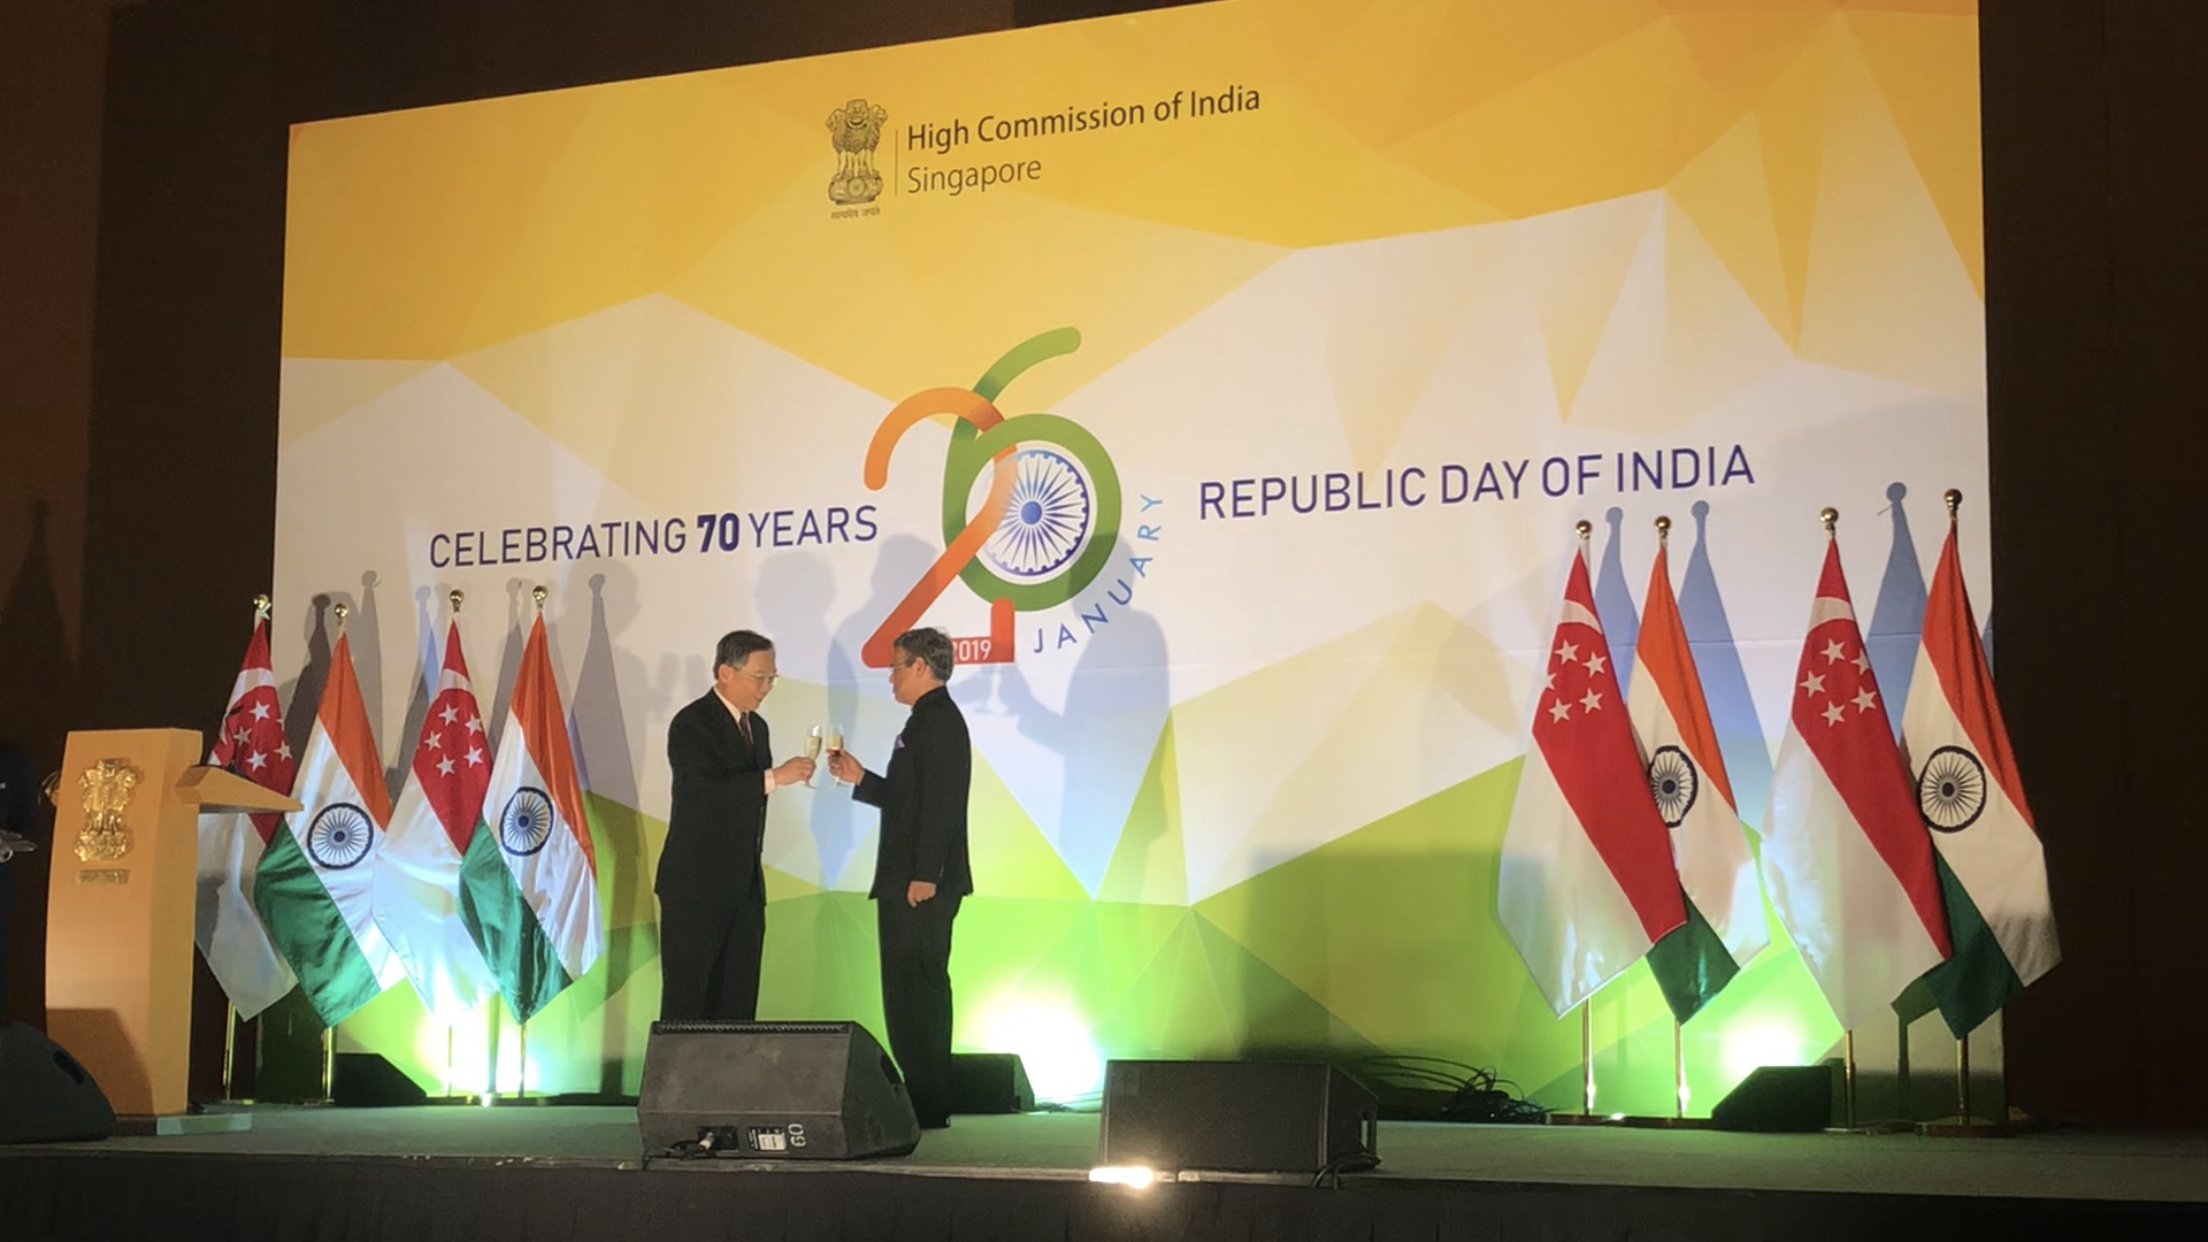 High Commissioner of India, Singapore, Mr Jawed Ashraf, sharing a toast with Mr Gam Kim Yong, Minister For Health, at the Republic Day reception on January 25. Photo: Connected to India